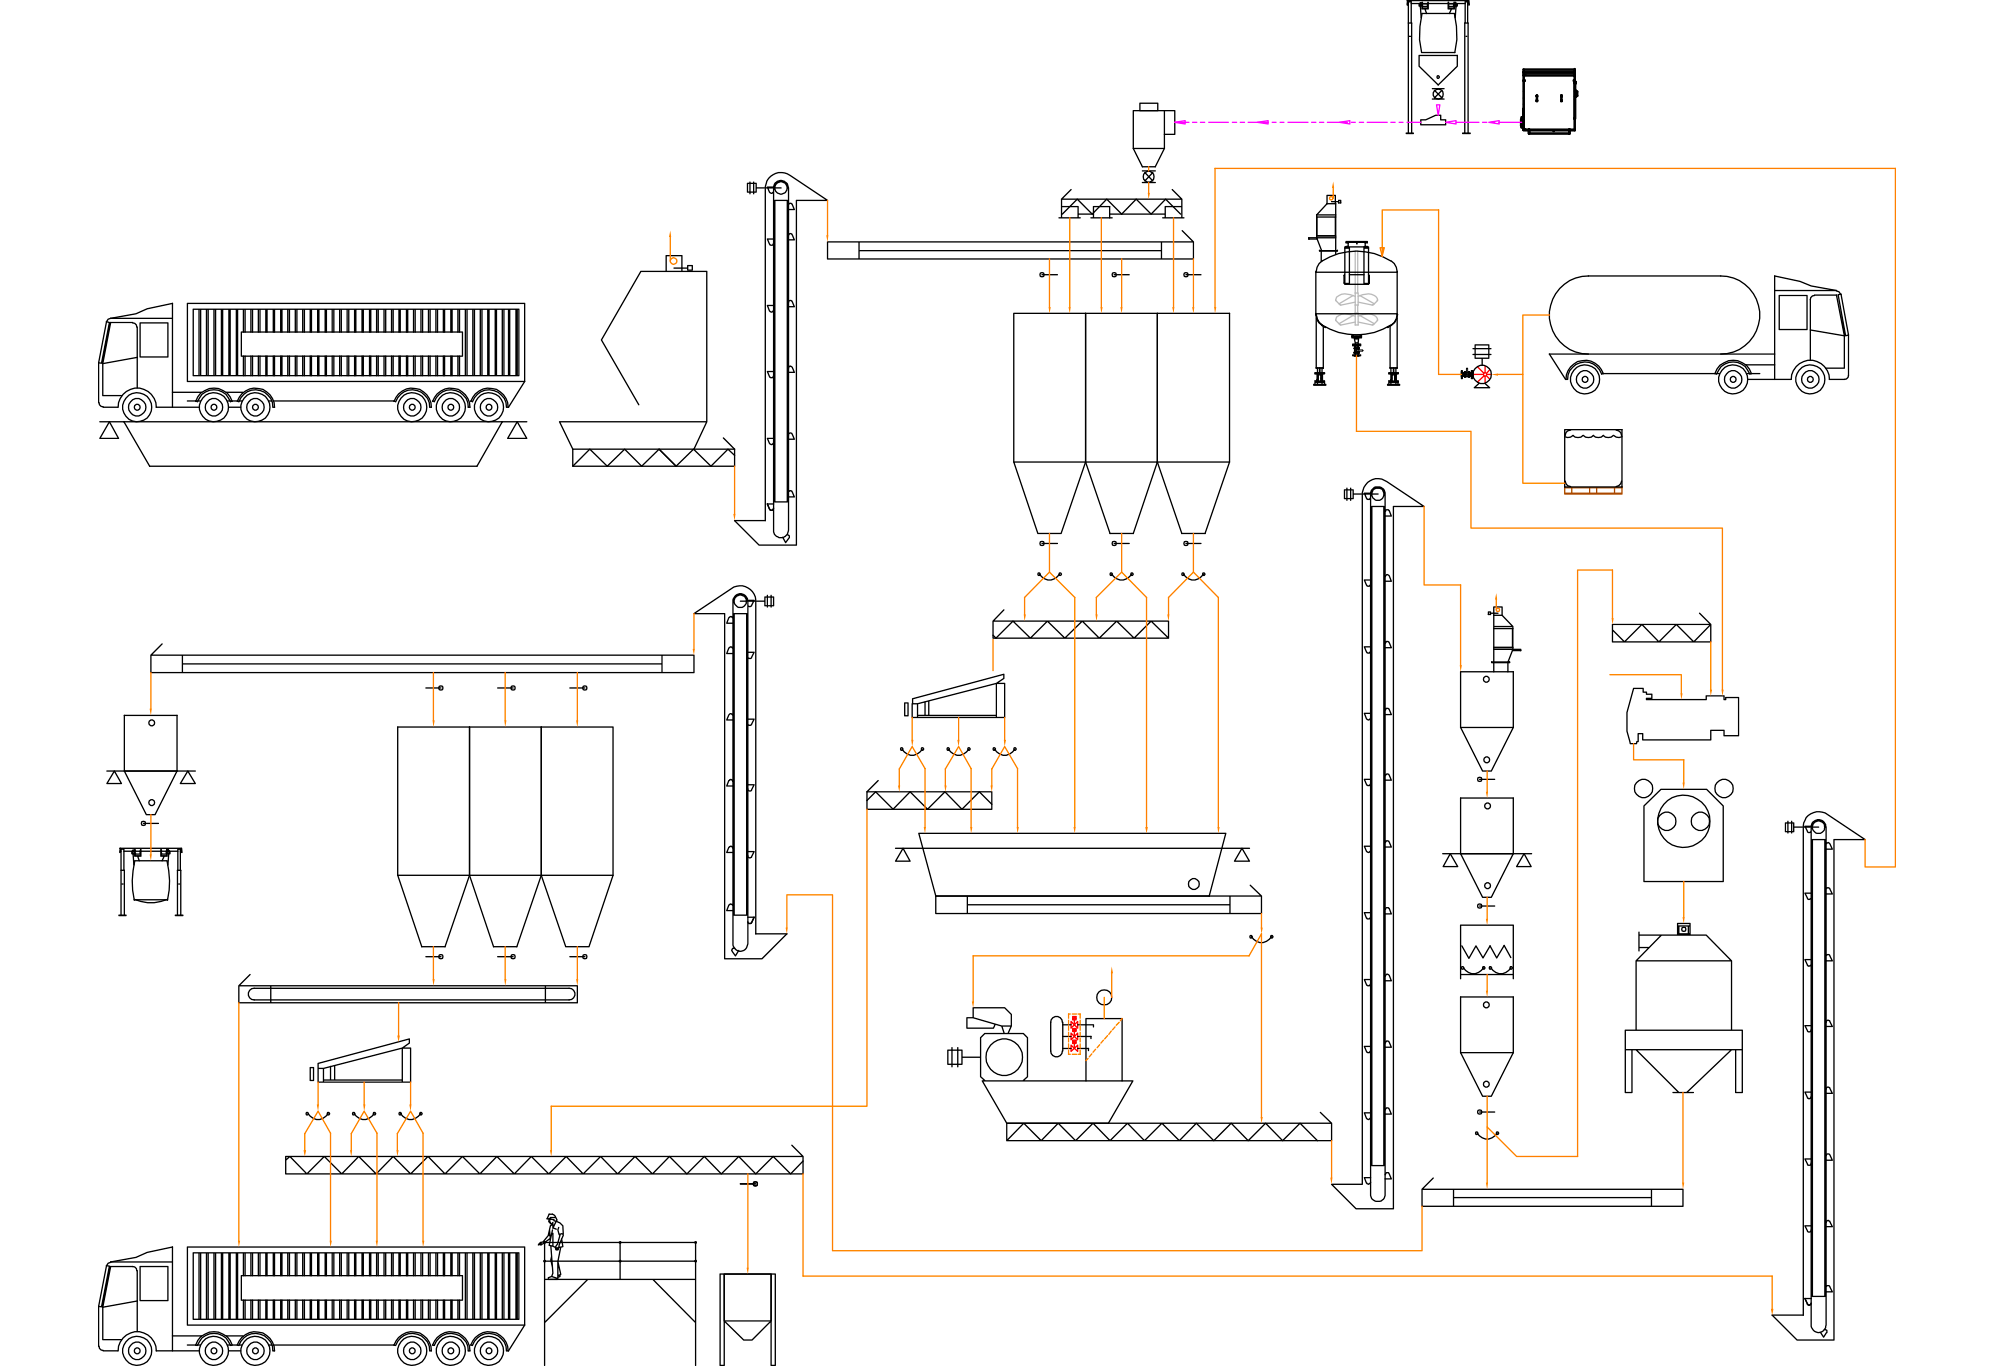 Conveying And Processing Machinery 2 Isf Ltd Standard For Process Flow Diagram Elevators